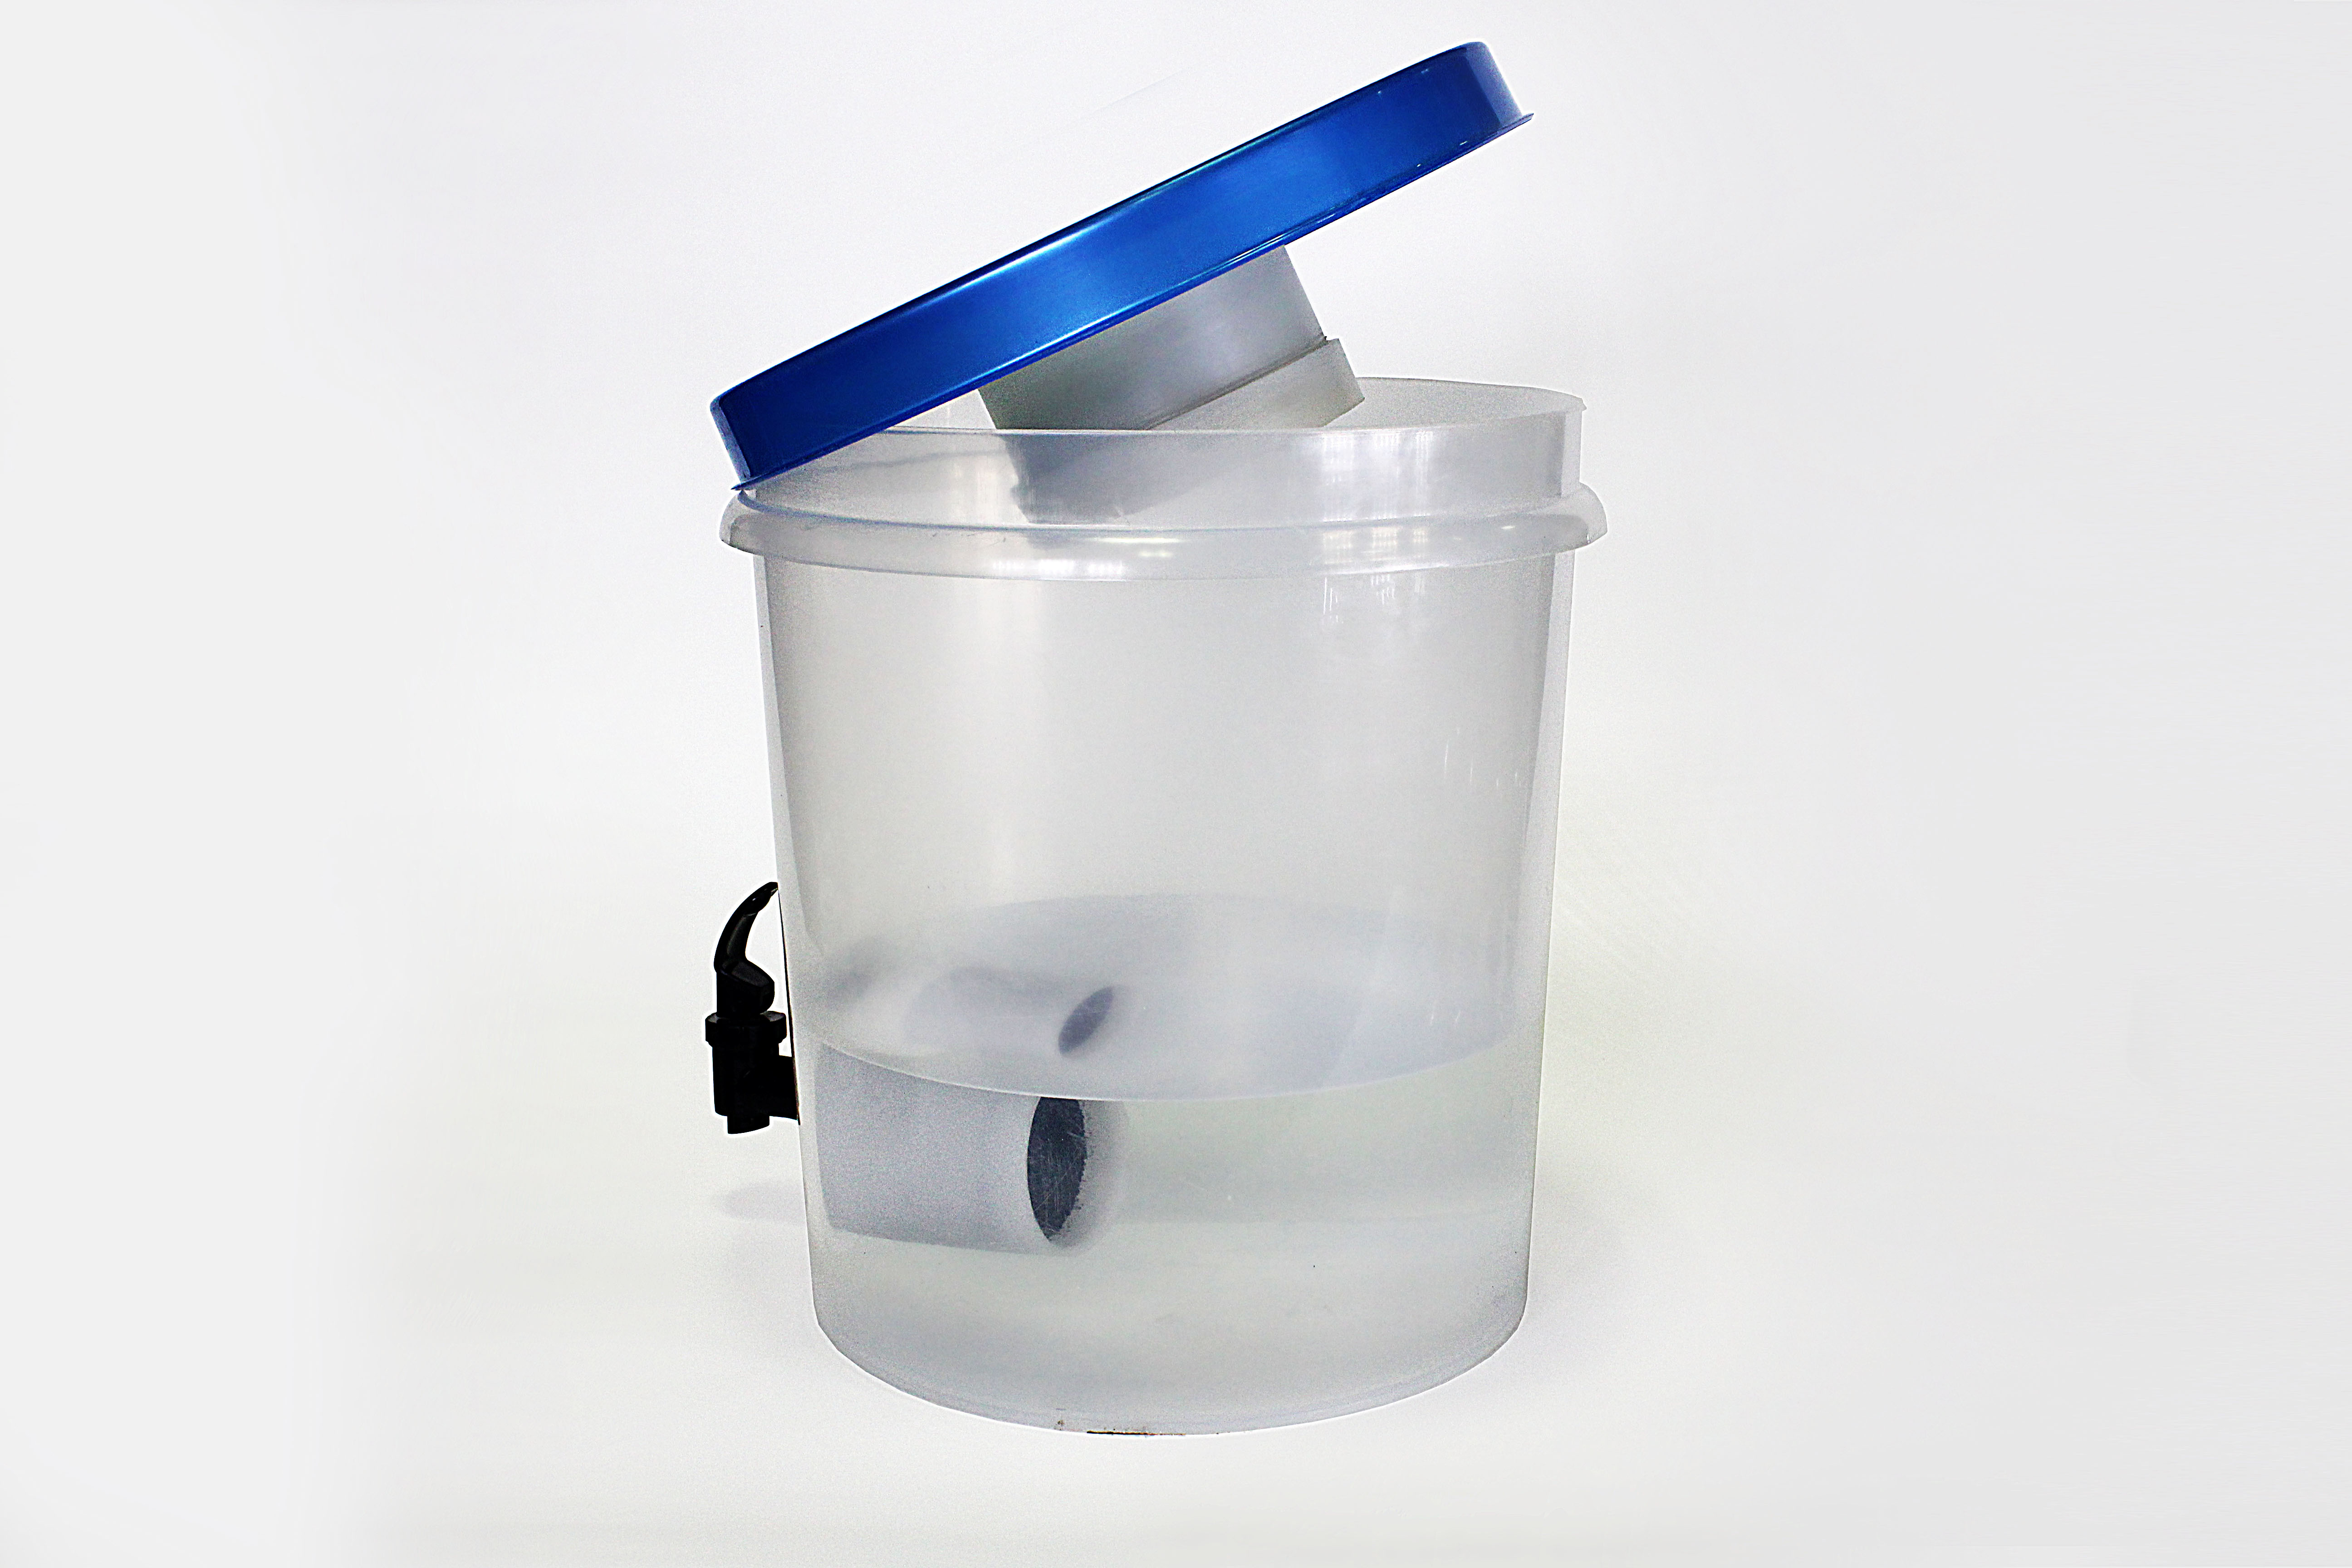 water-purification-system-photo